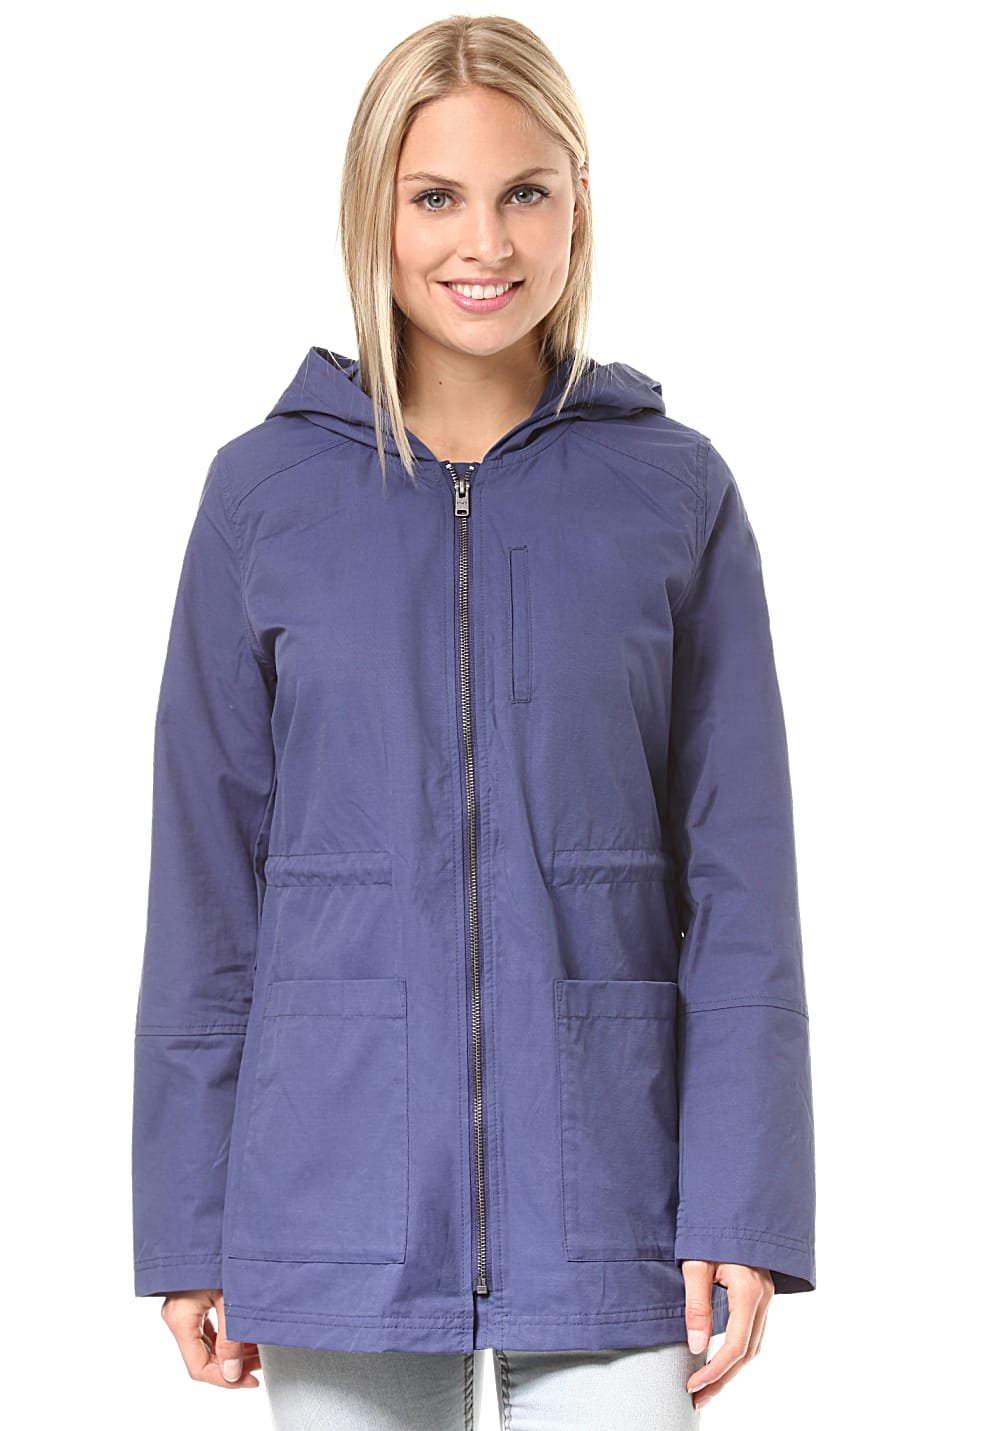 Jacken - Roxy Crazy Clouds Mantel für Damen Blau  - Onlineshop Planet Sports